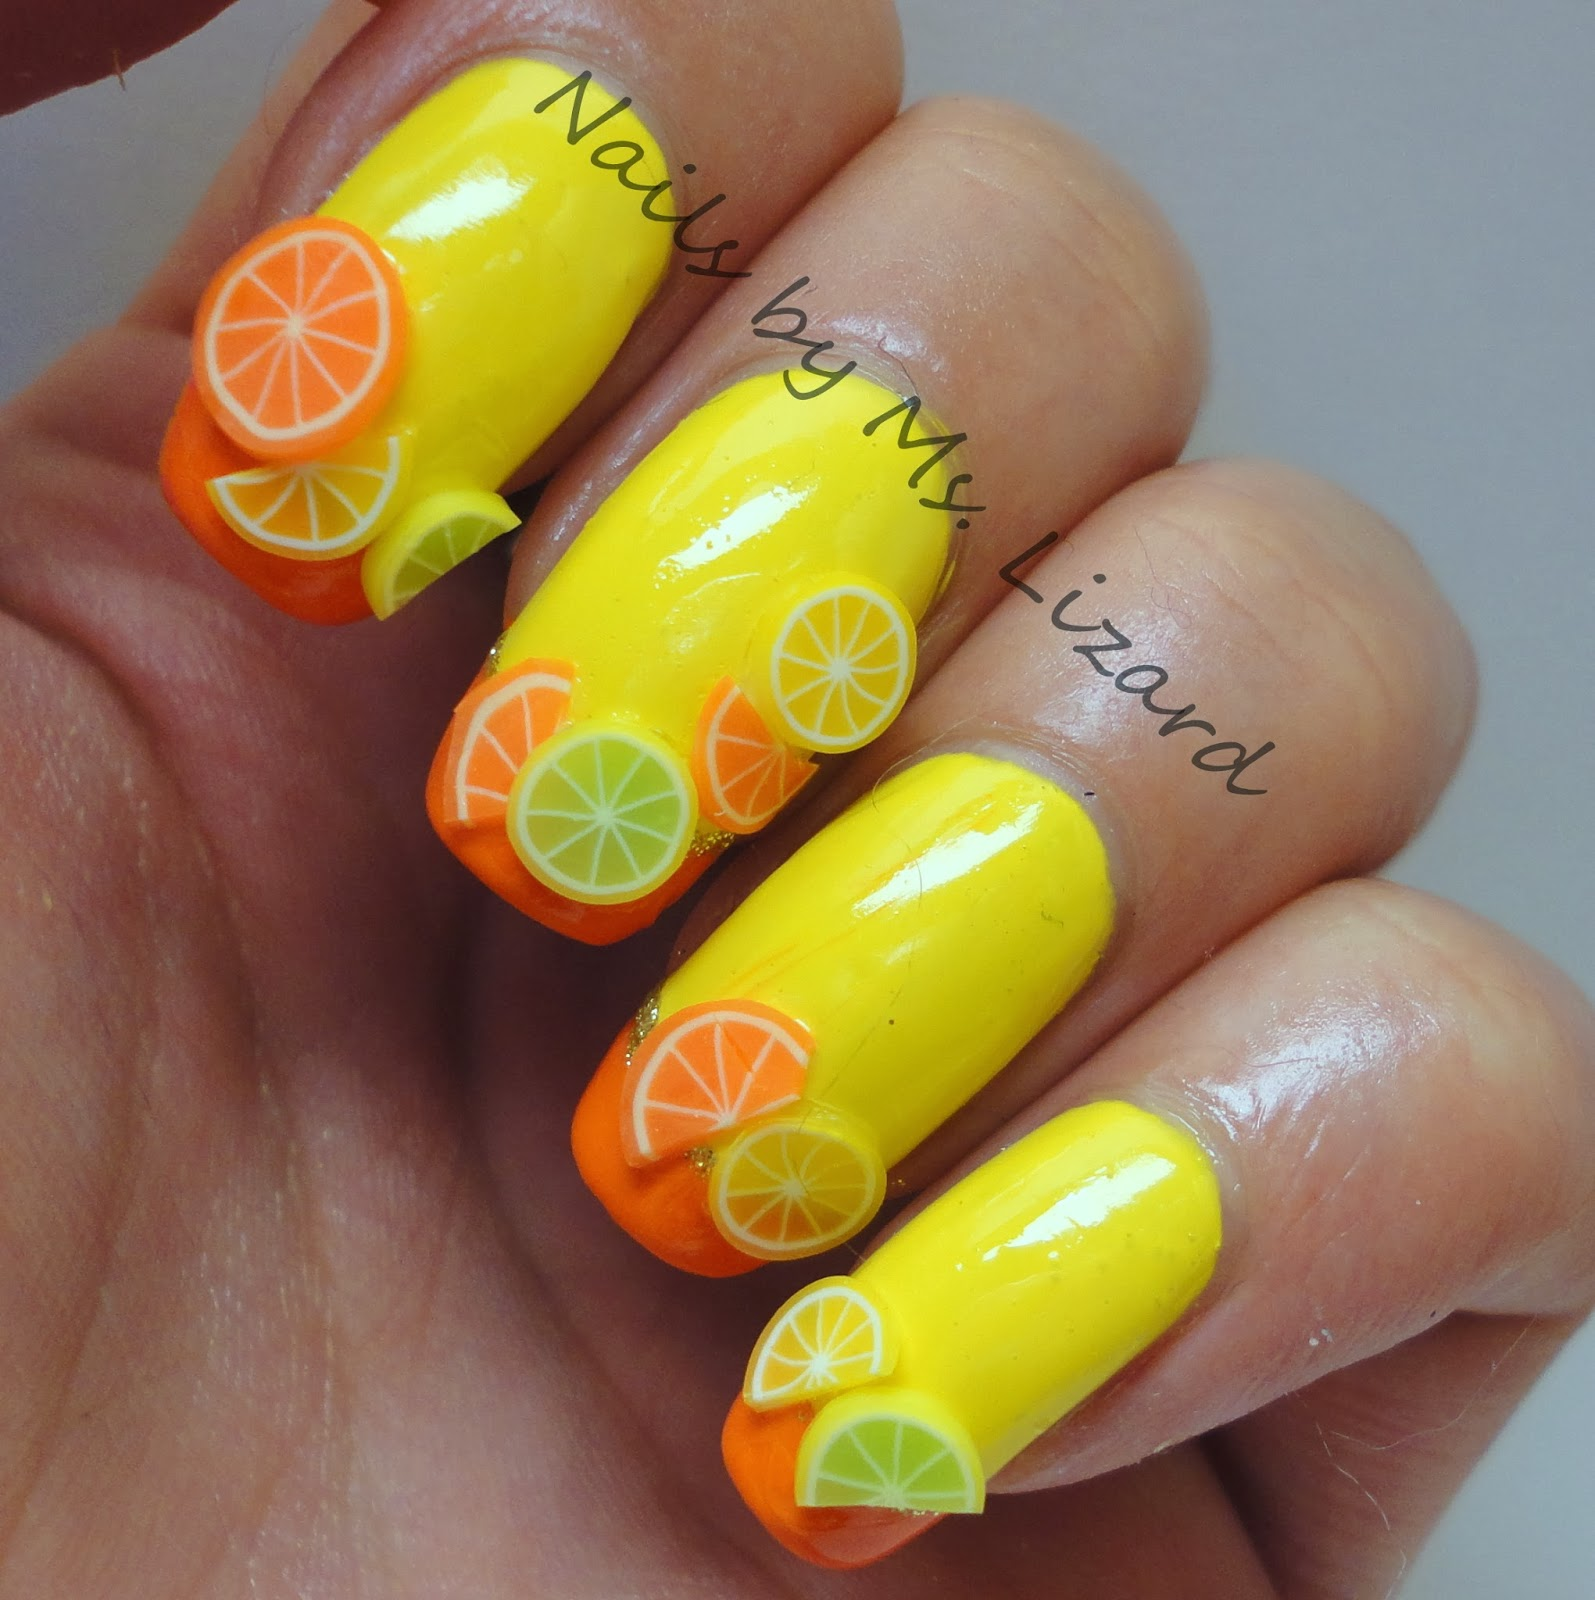 Nails by Ms. Lizard: Born Pretty Store: Nail Art Fruit Fimo Review